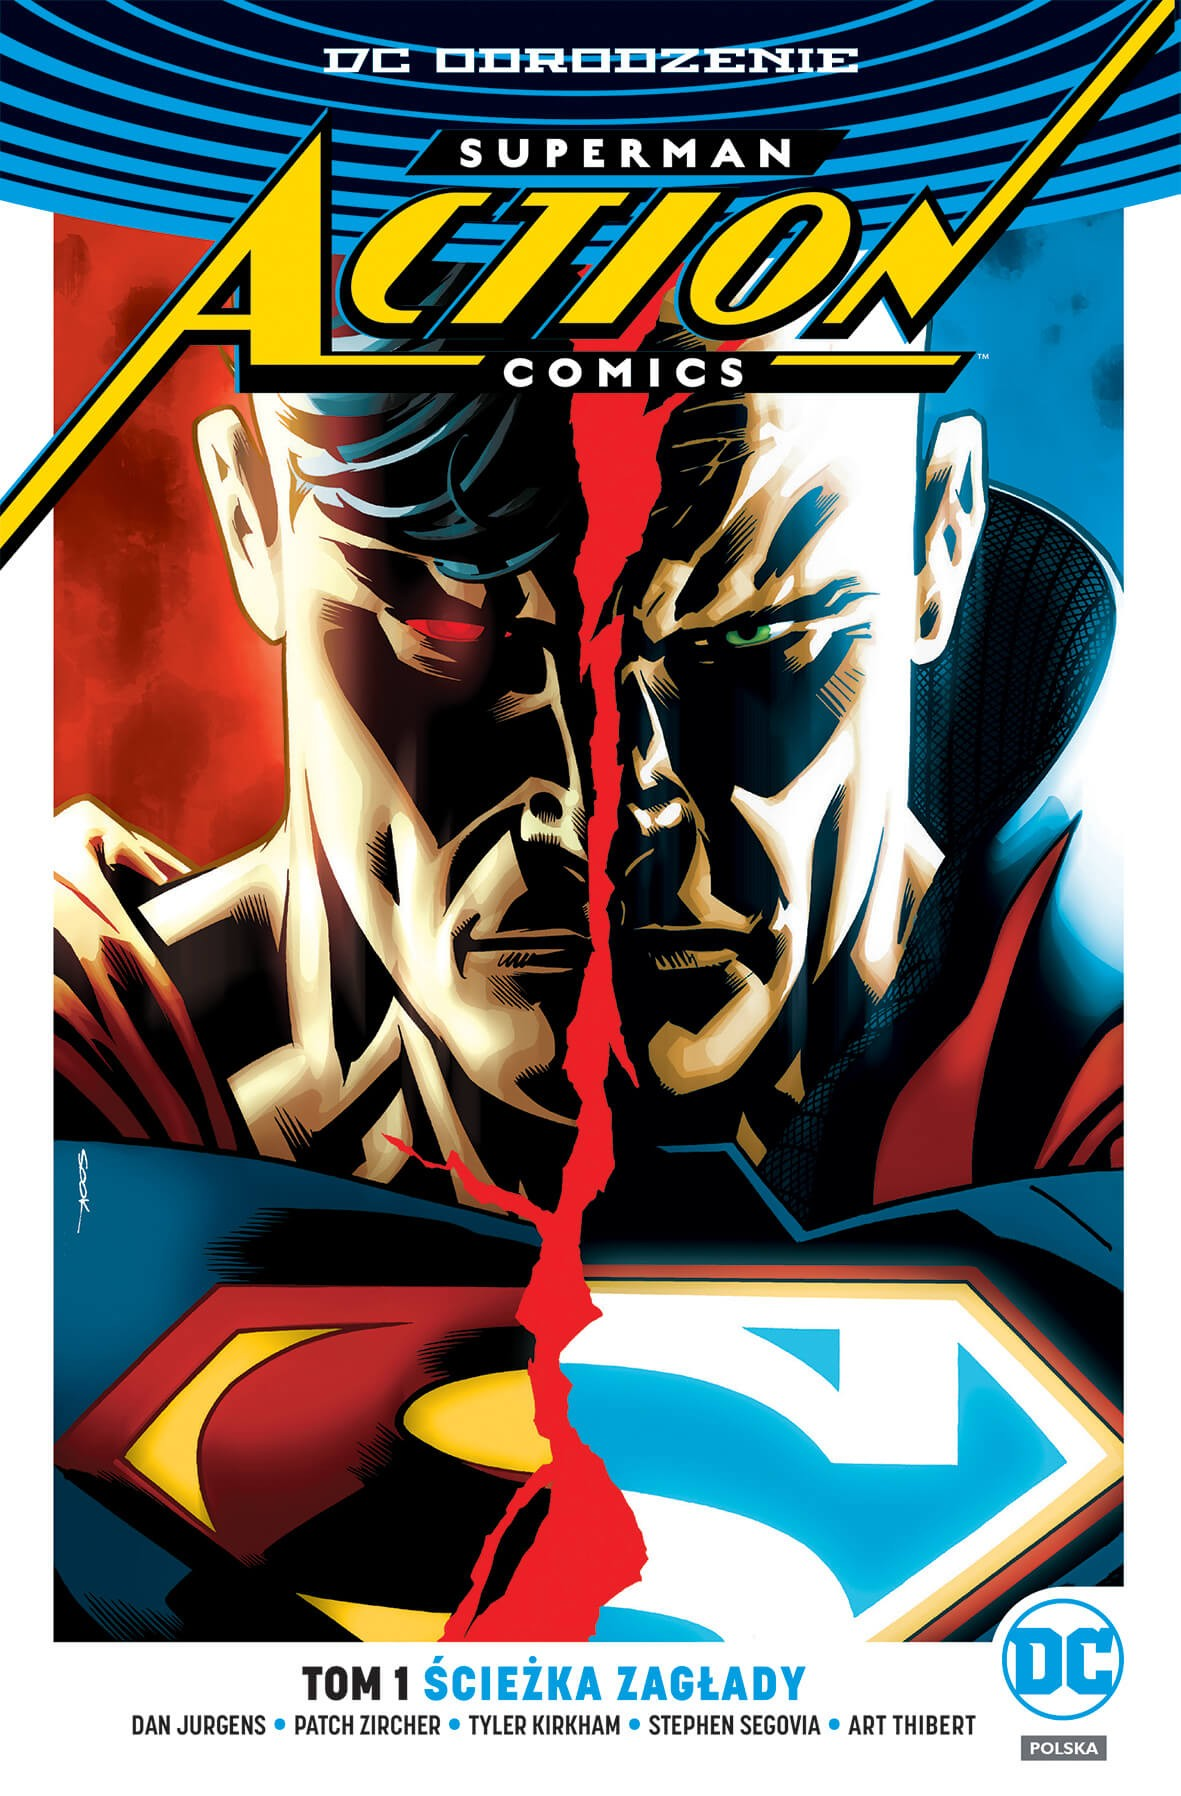 cover_rebirth Superman Action comics_tom 01 10cm.jpg